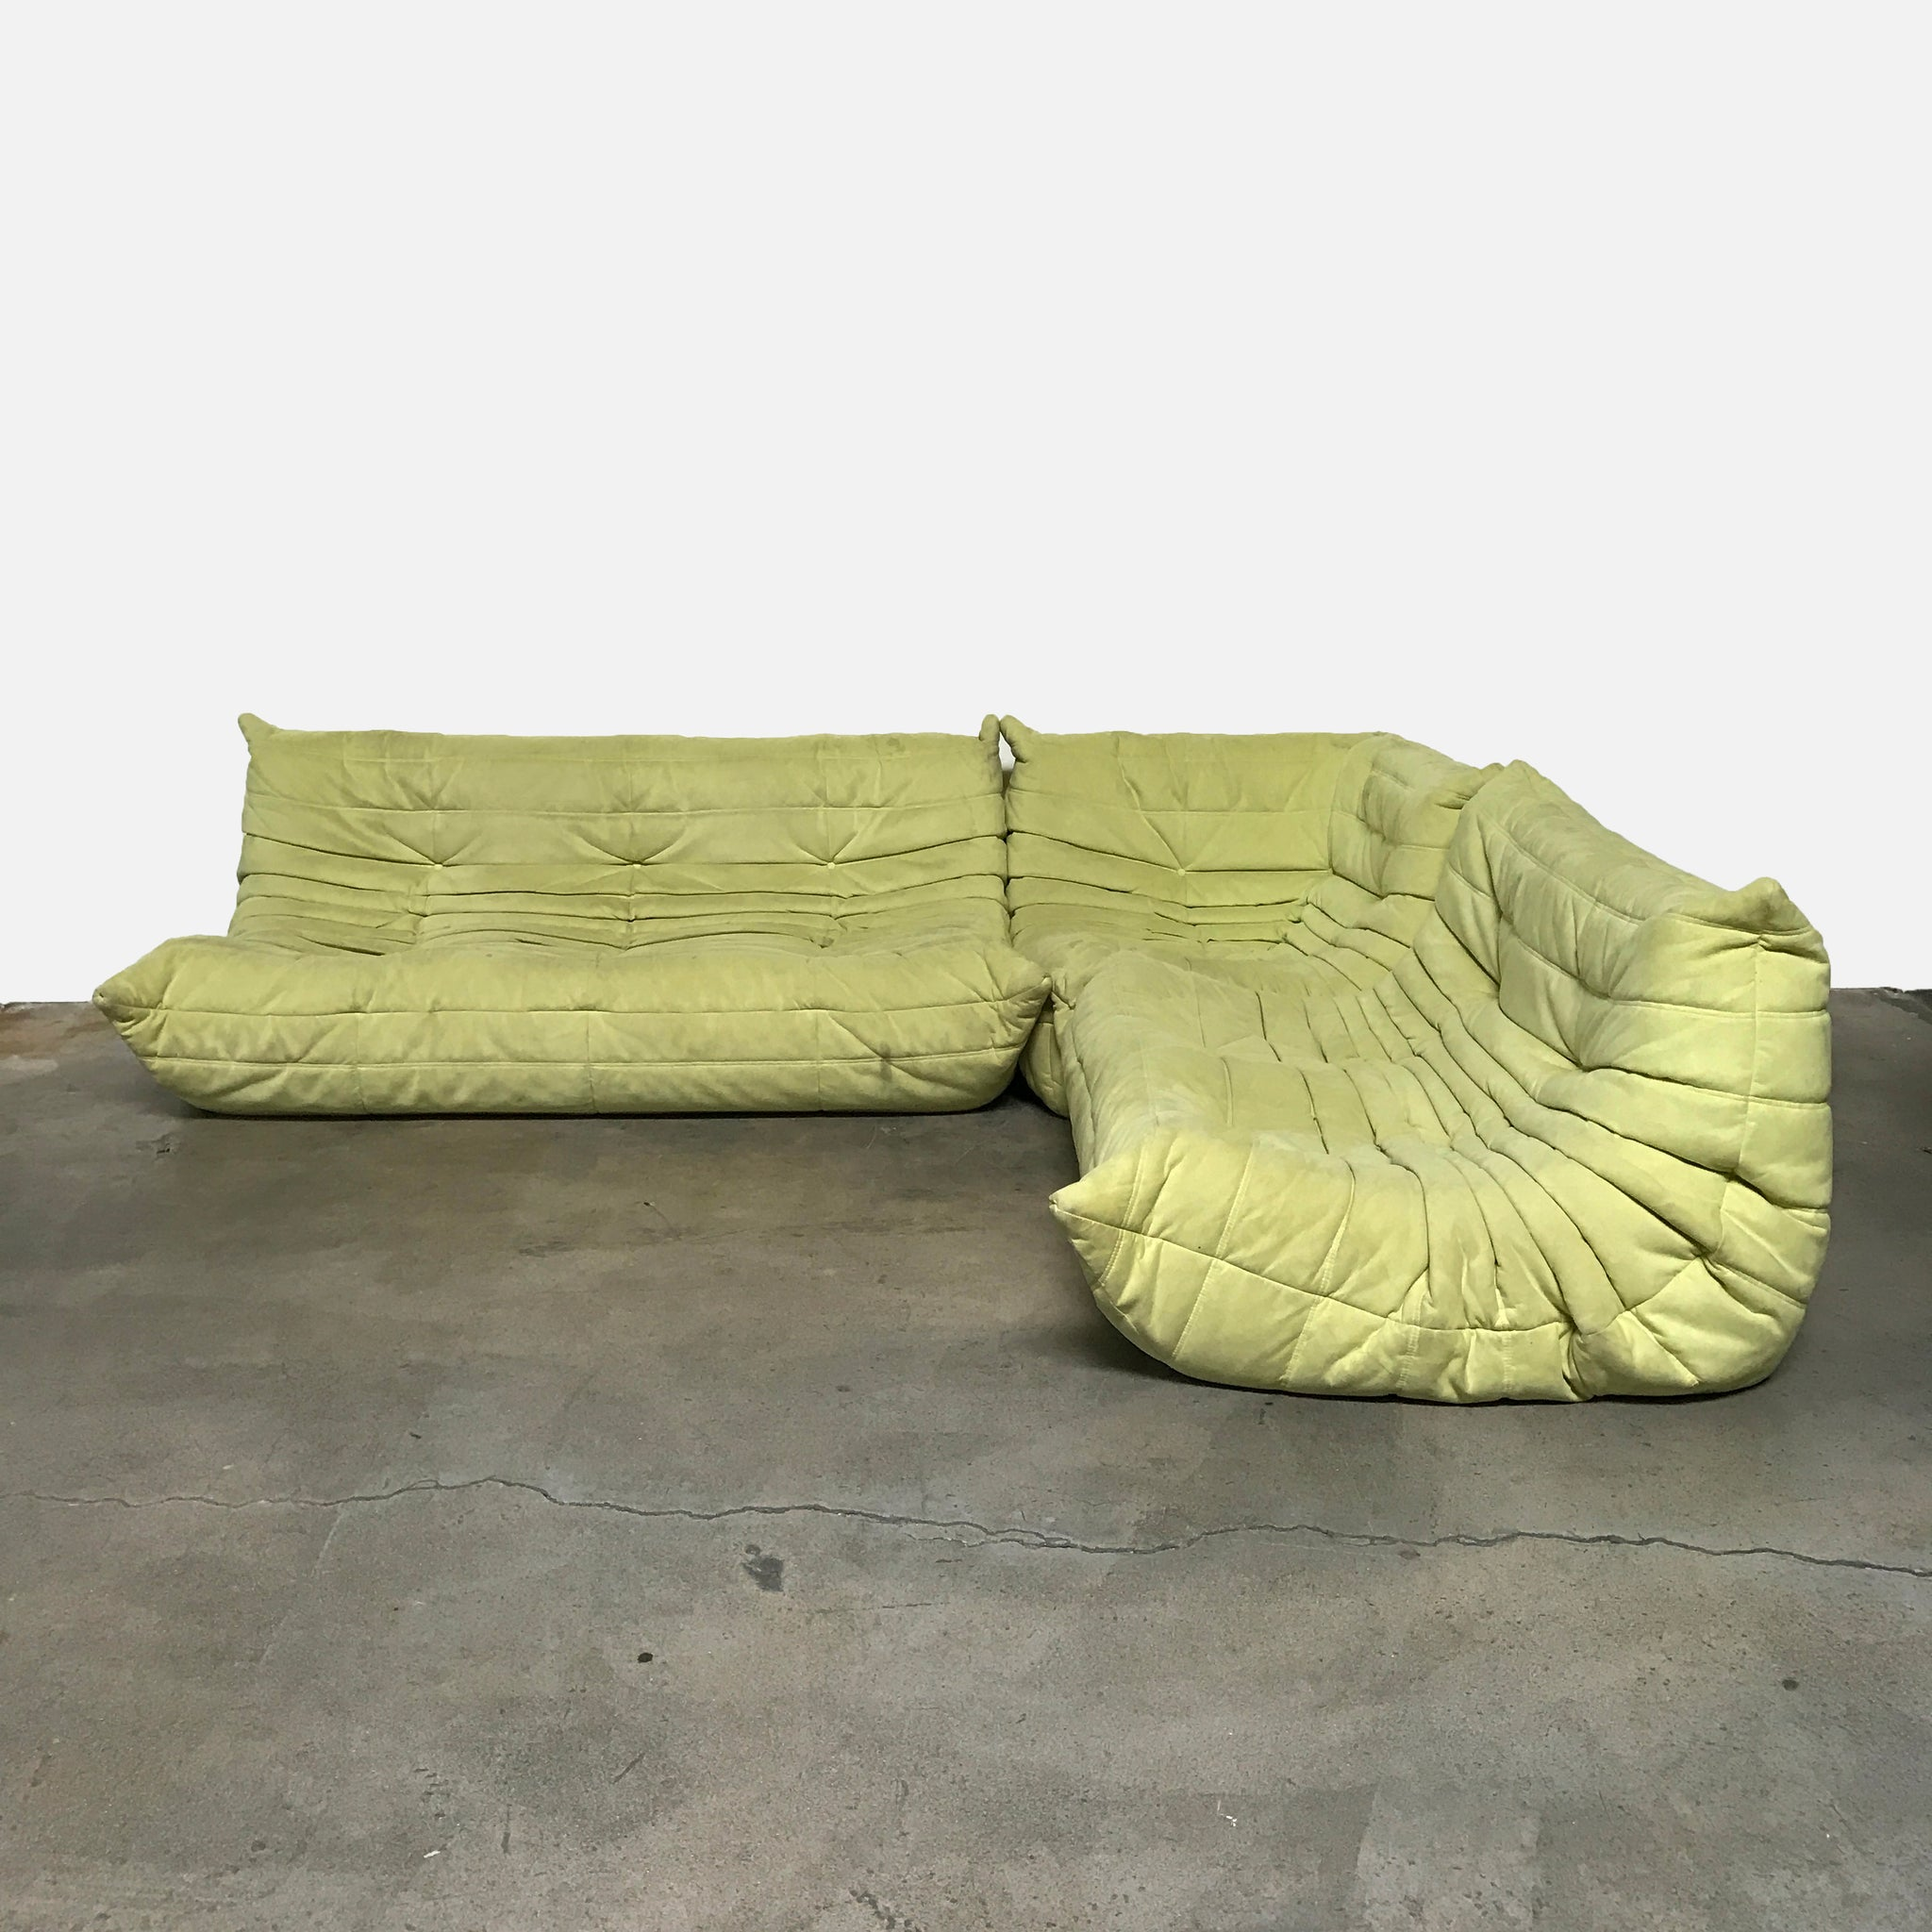 sectionalofas maryland sectionals used in sofas owner craigslist excellent cheap photo natuzzi full sleeper center of by circularofa cognac for orlando size sale sectional leather editions inspirations forale